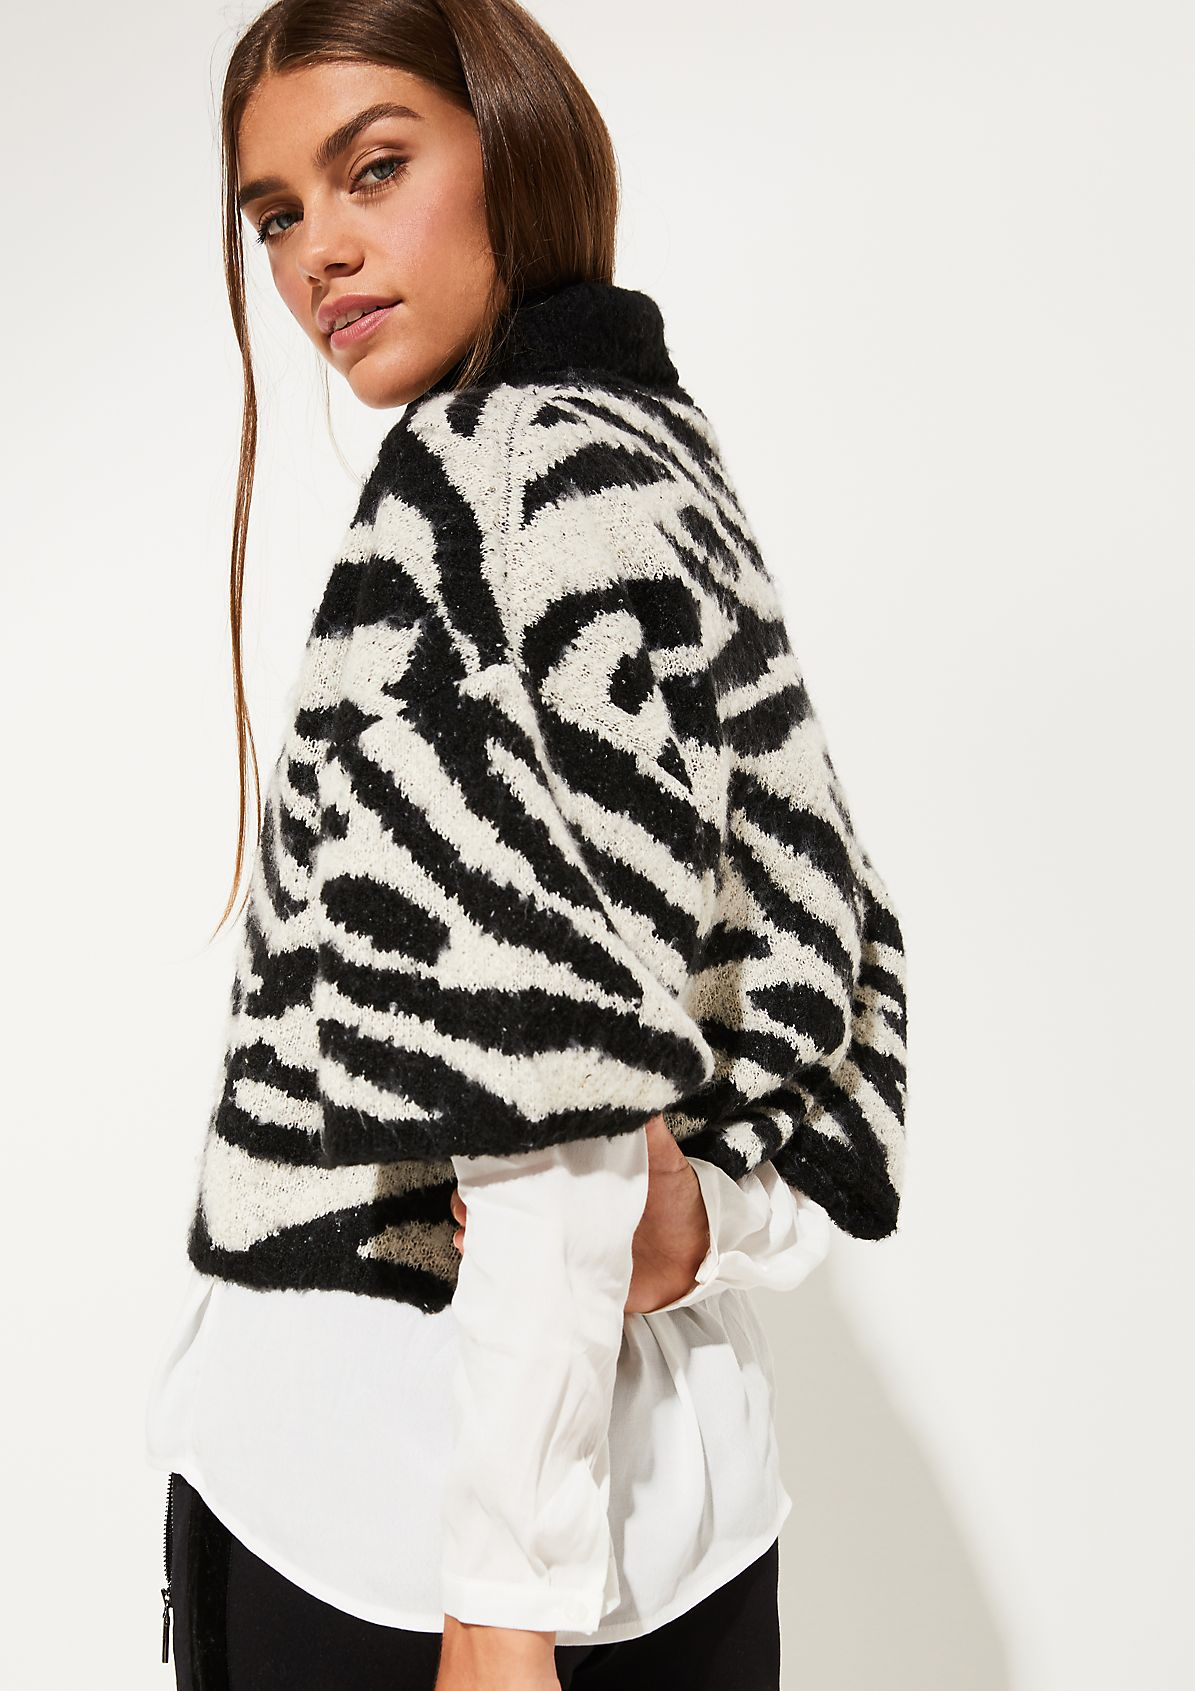 Short sleeve knitted poncho with decorative all-over pattern from comma